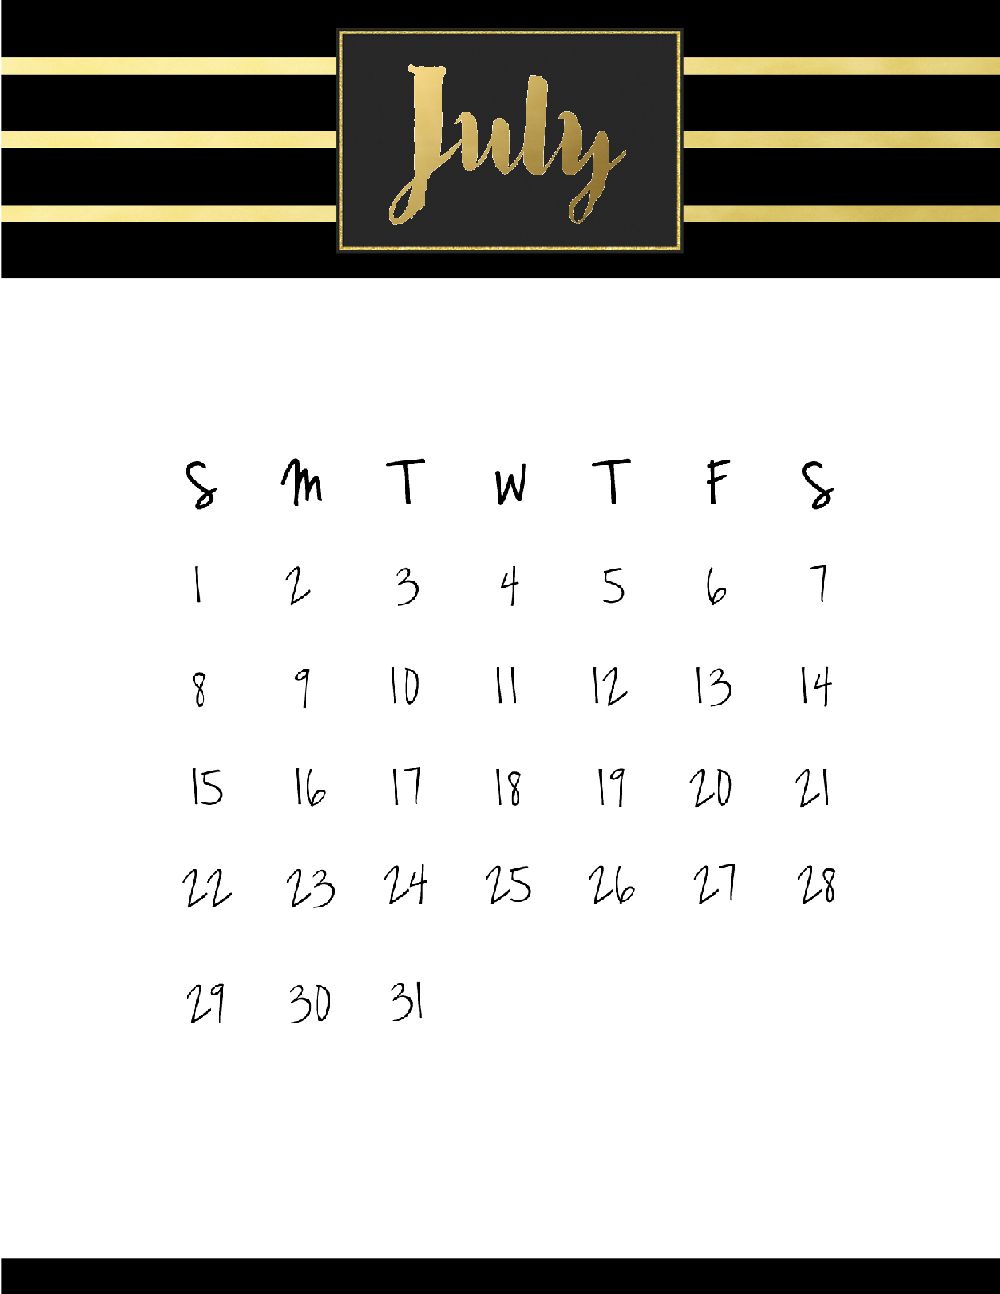 Personalized July 2018 Calendar Printable